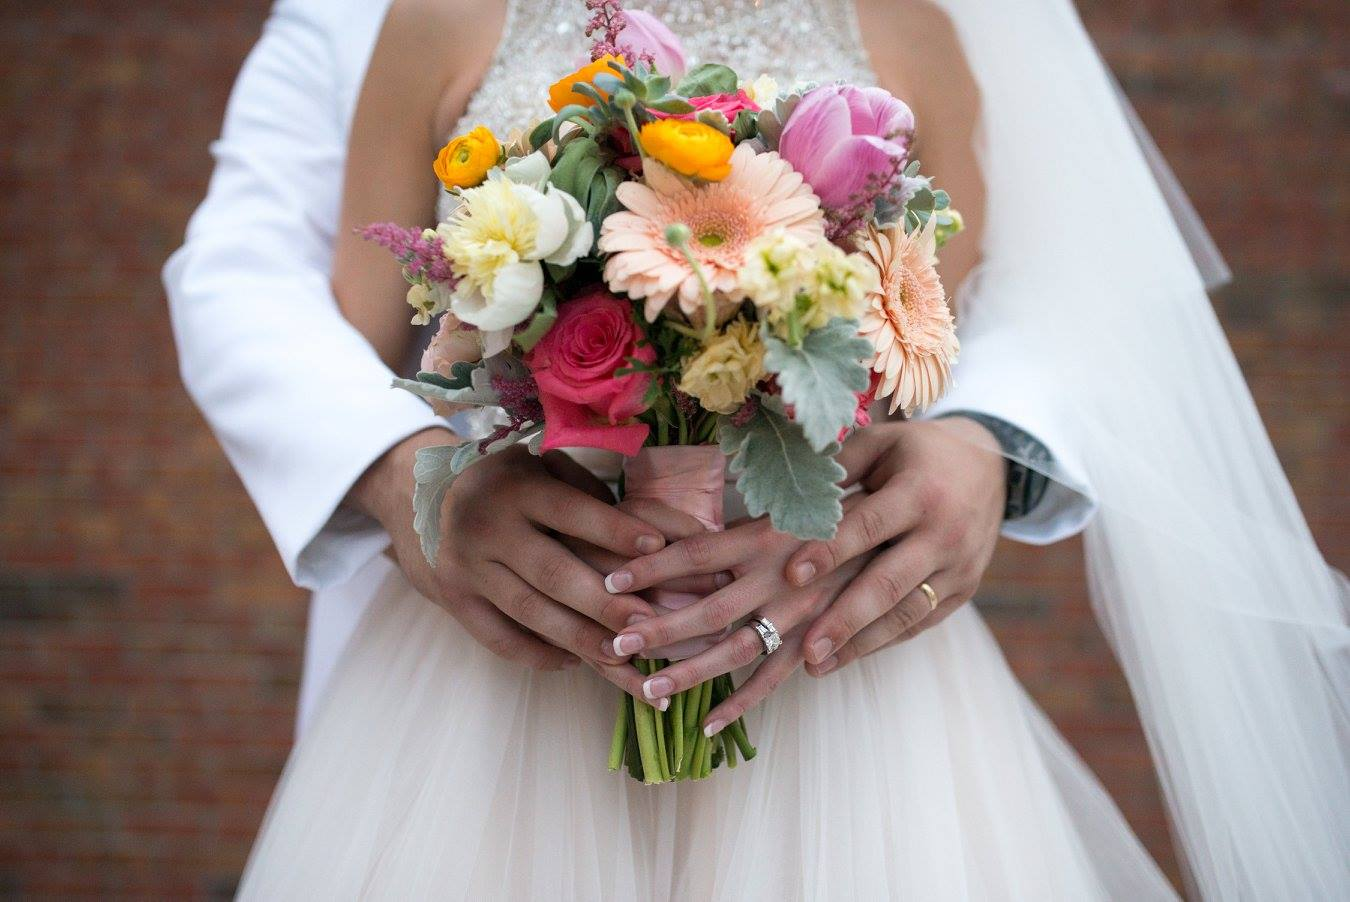 Couple holding hands over Bouquet